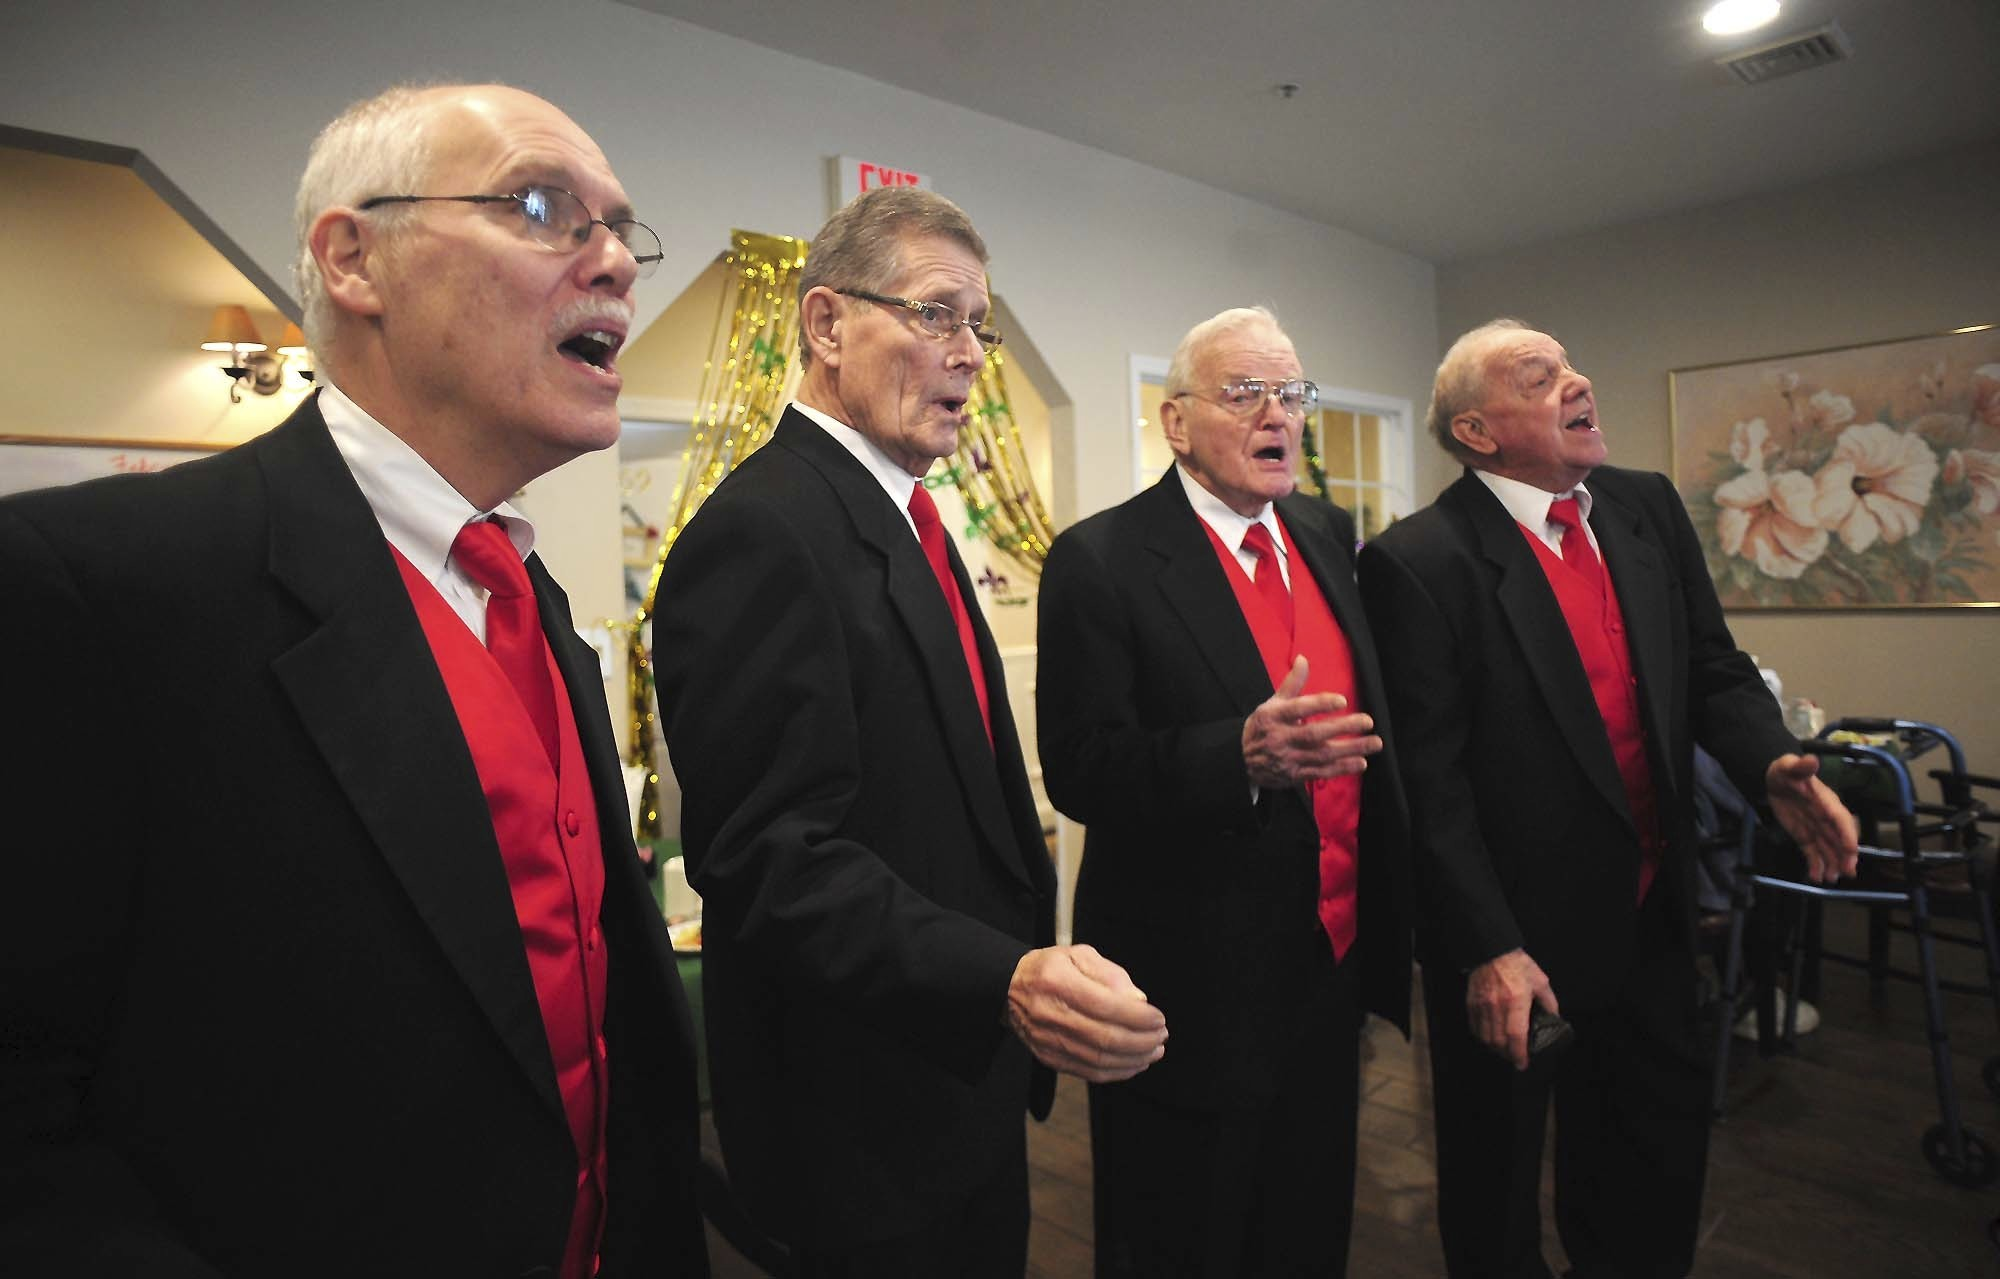 Wyoming Valley Barbershop Quartet singers, from the left; Steve Mansour, Ralph Gillespie. Ted Rebennack and Phil Brown, sing Valentines Day songs for residents at Village At Greenbriar Assisted living facility, in Dallas, Pa., Wednesday Feb.14, 2018. (Mark Moran/The Citizens' Voice via AP)